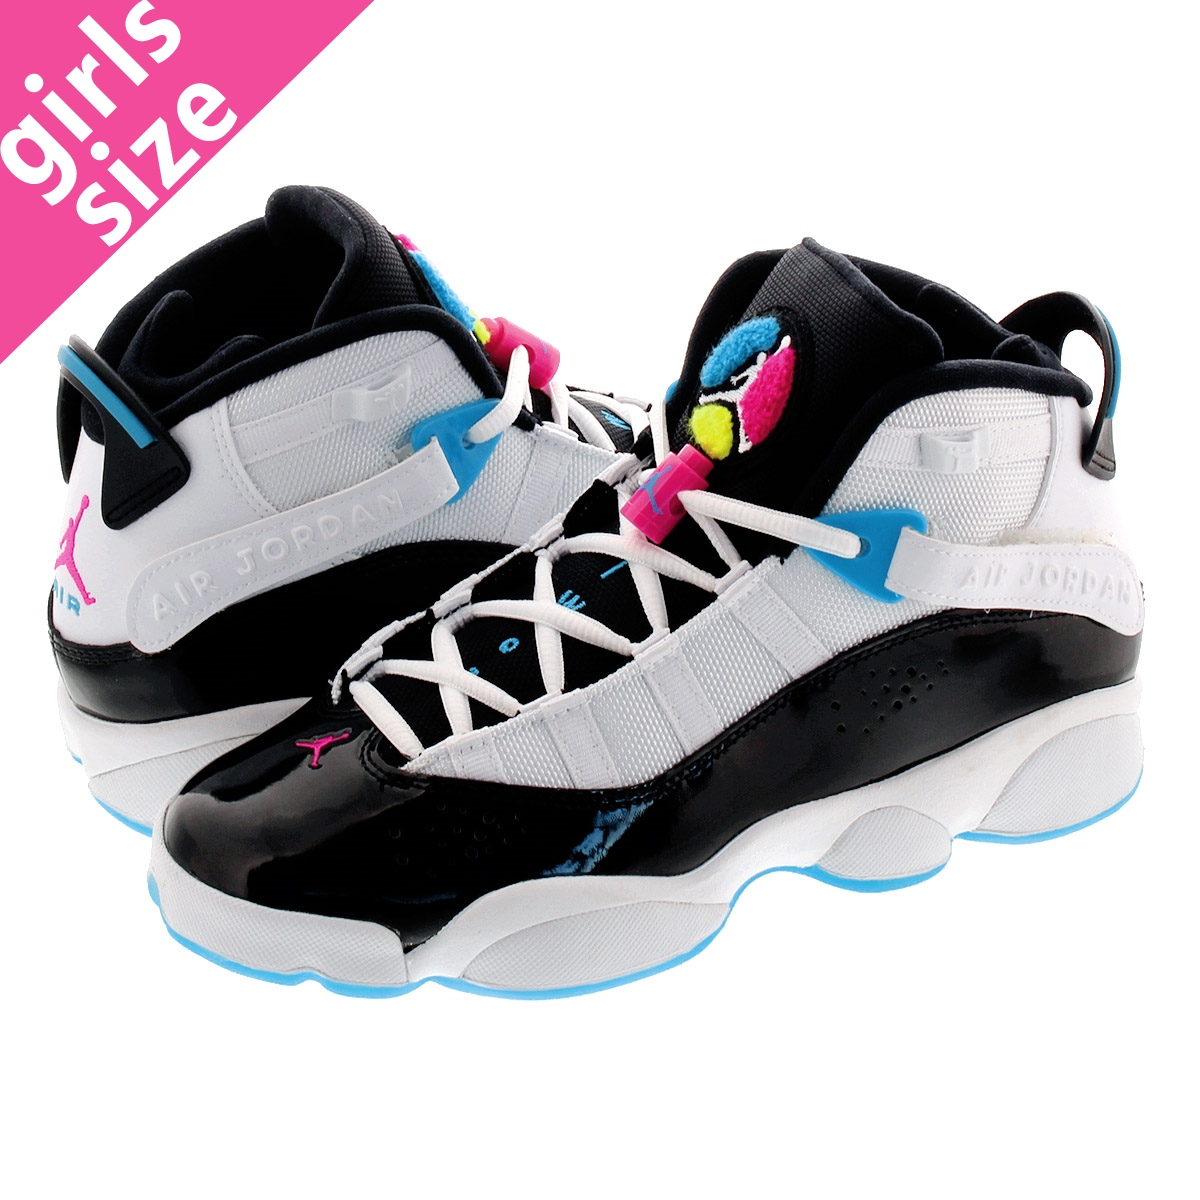 NIKE JORDAN 6 RINGS GS ナイキ ジョーダン 6リングス GS WHITE/BLACK/HYPER PINK ck0025-100